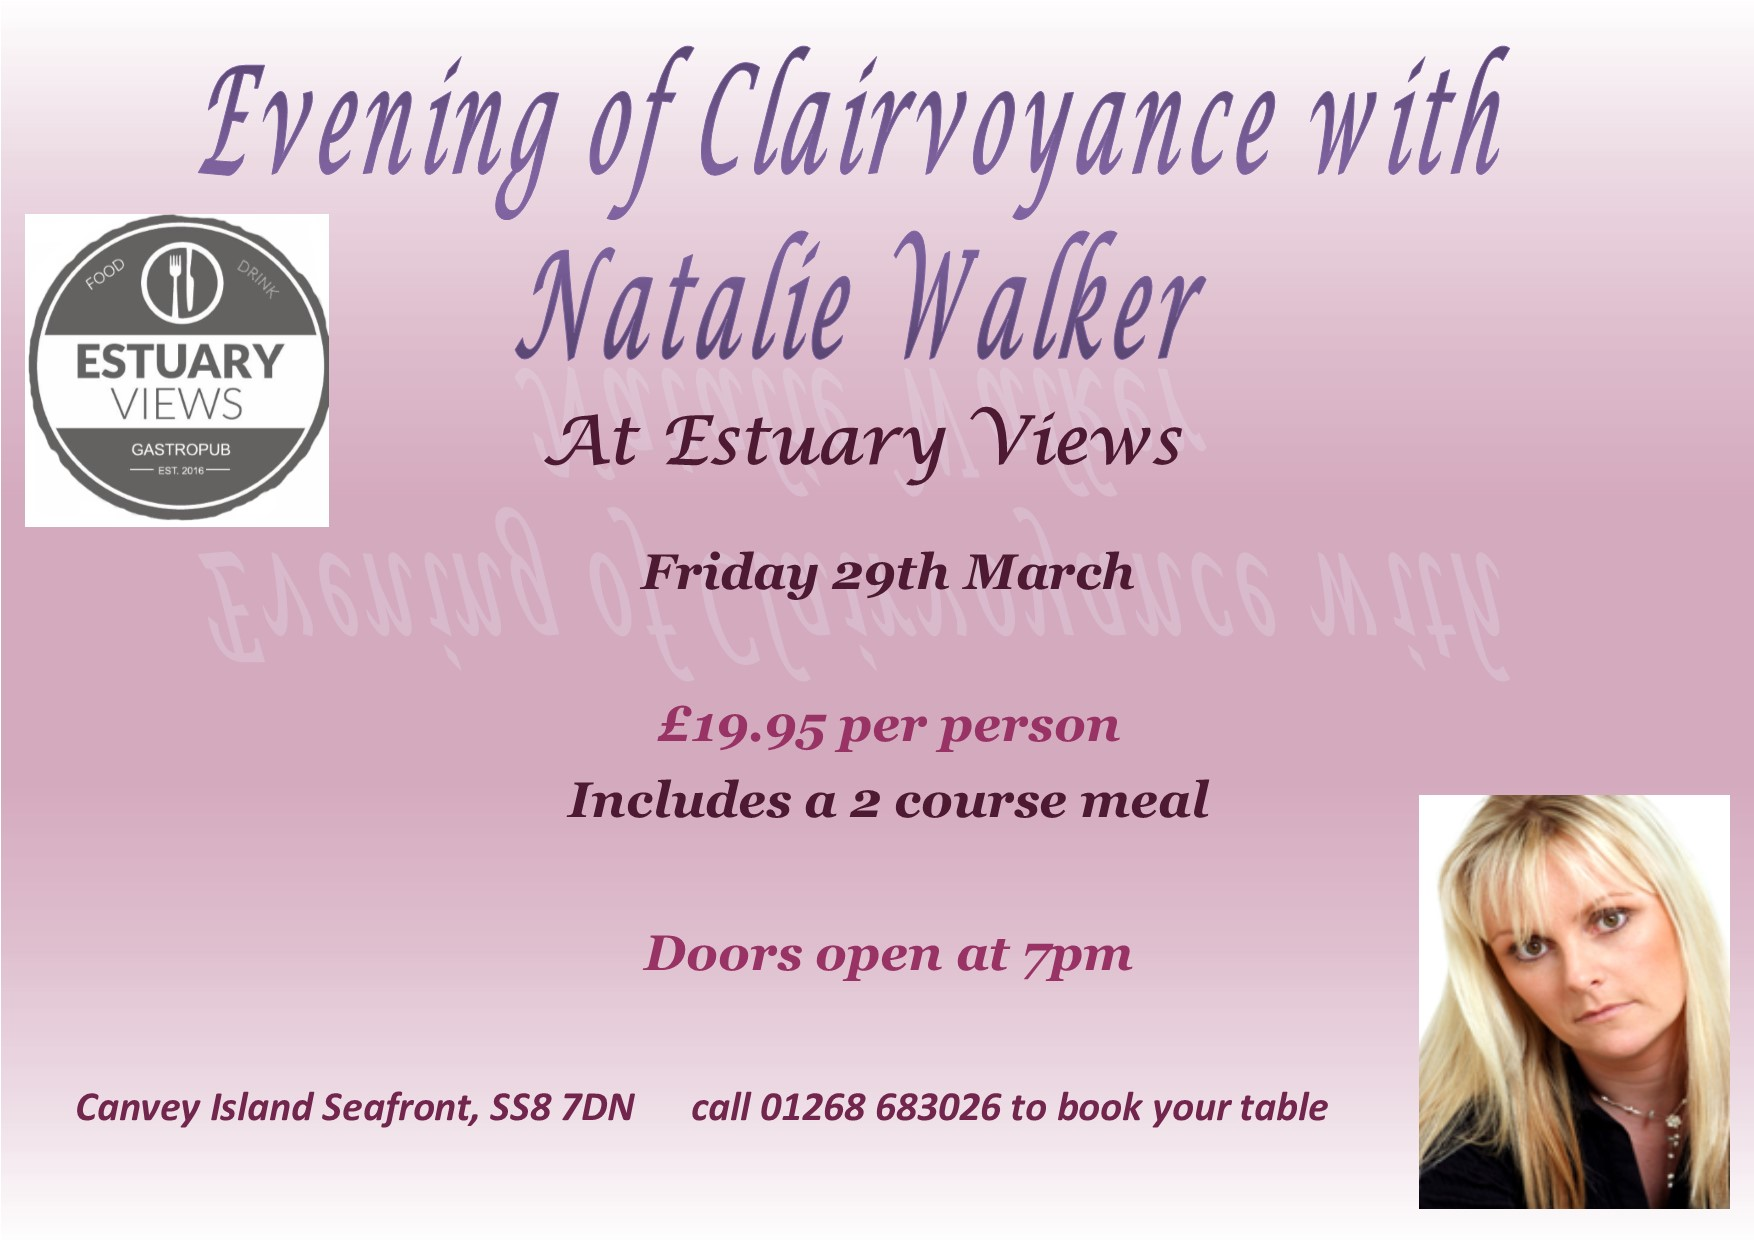 Natalie Walker Evening Of Clairvoyance With Natalie Walker On 29 March At 19 00